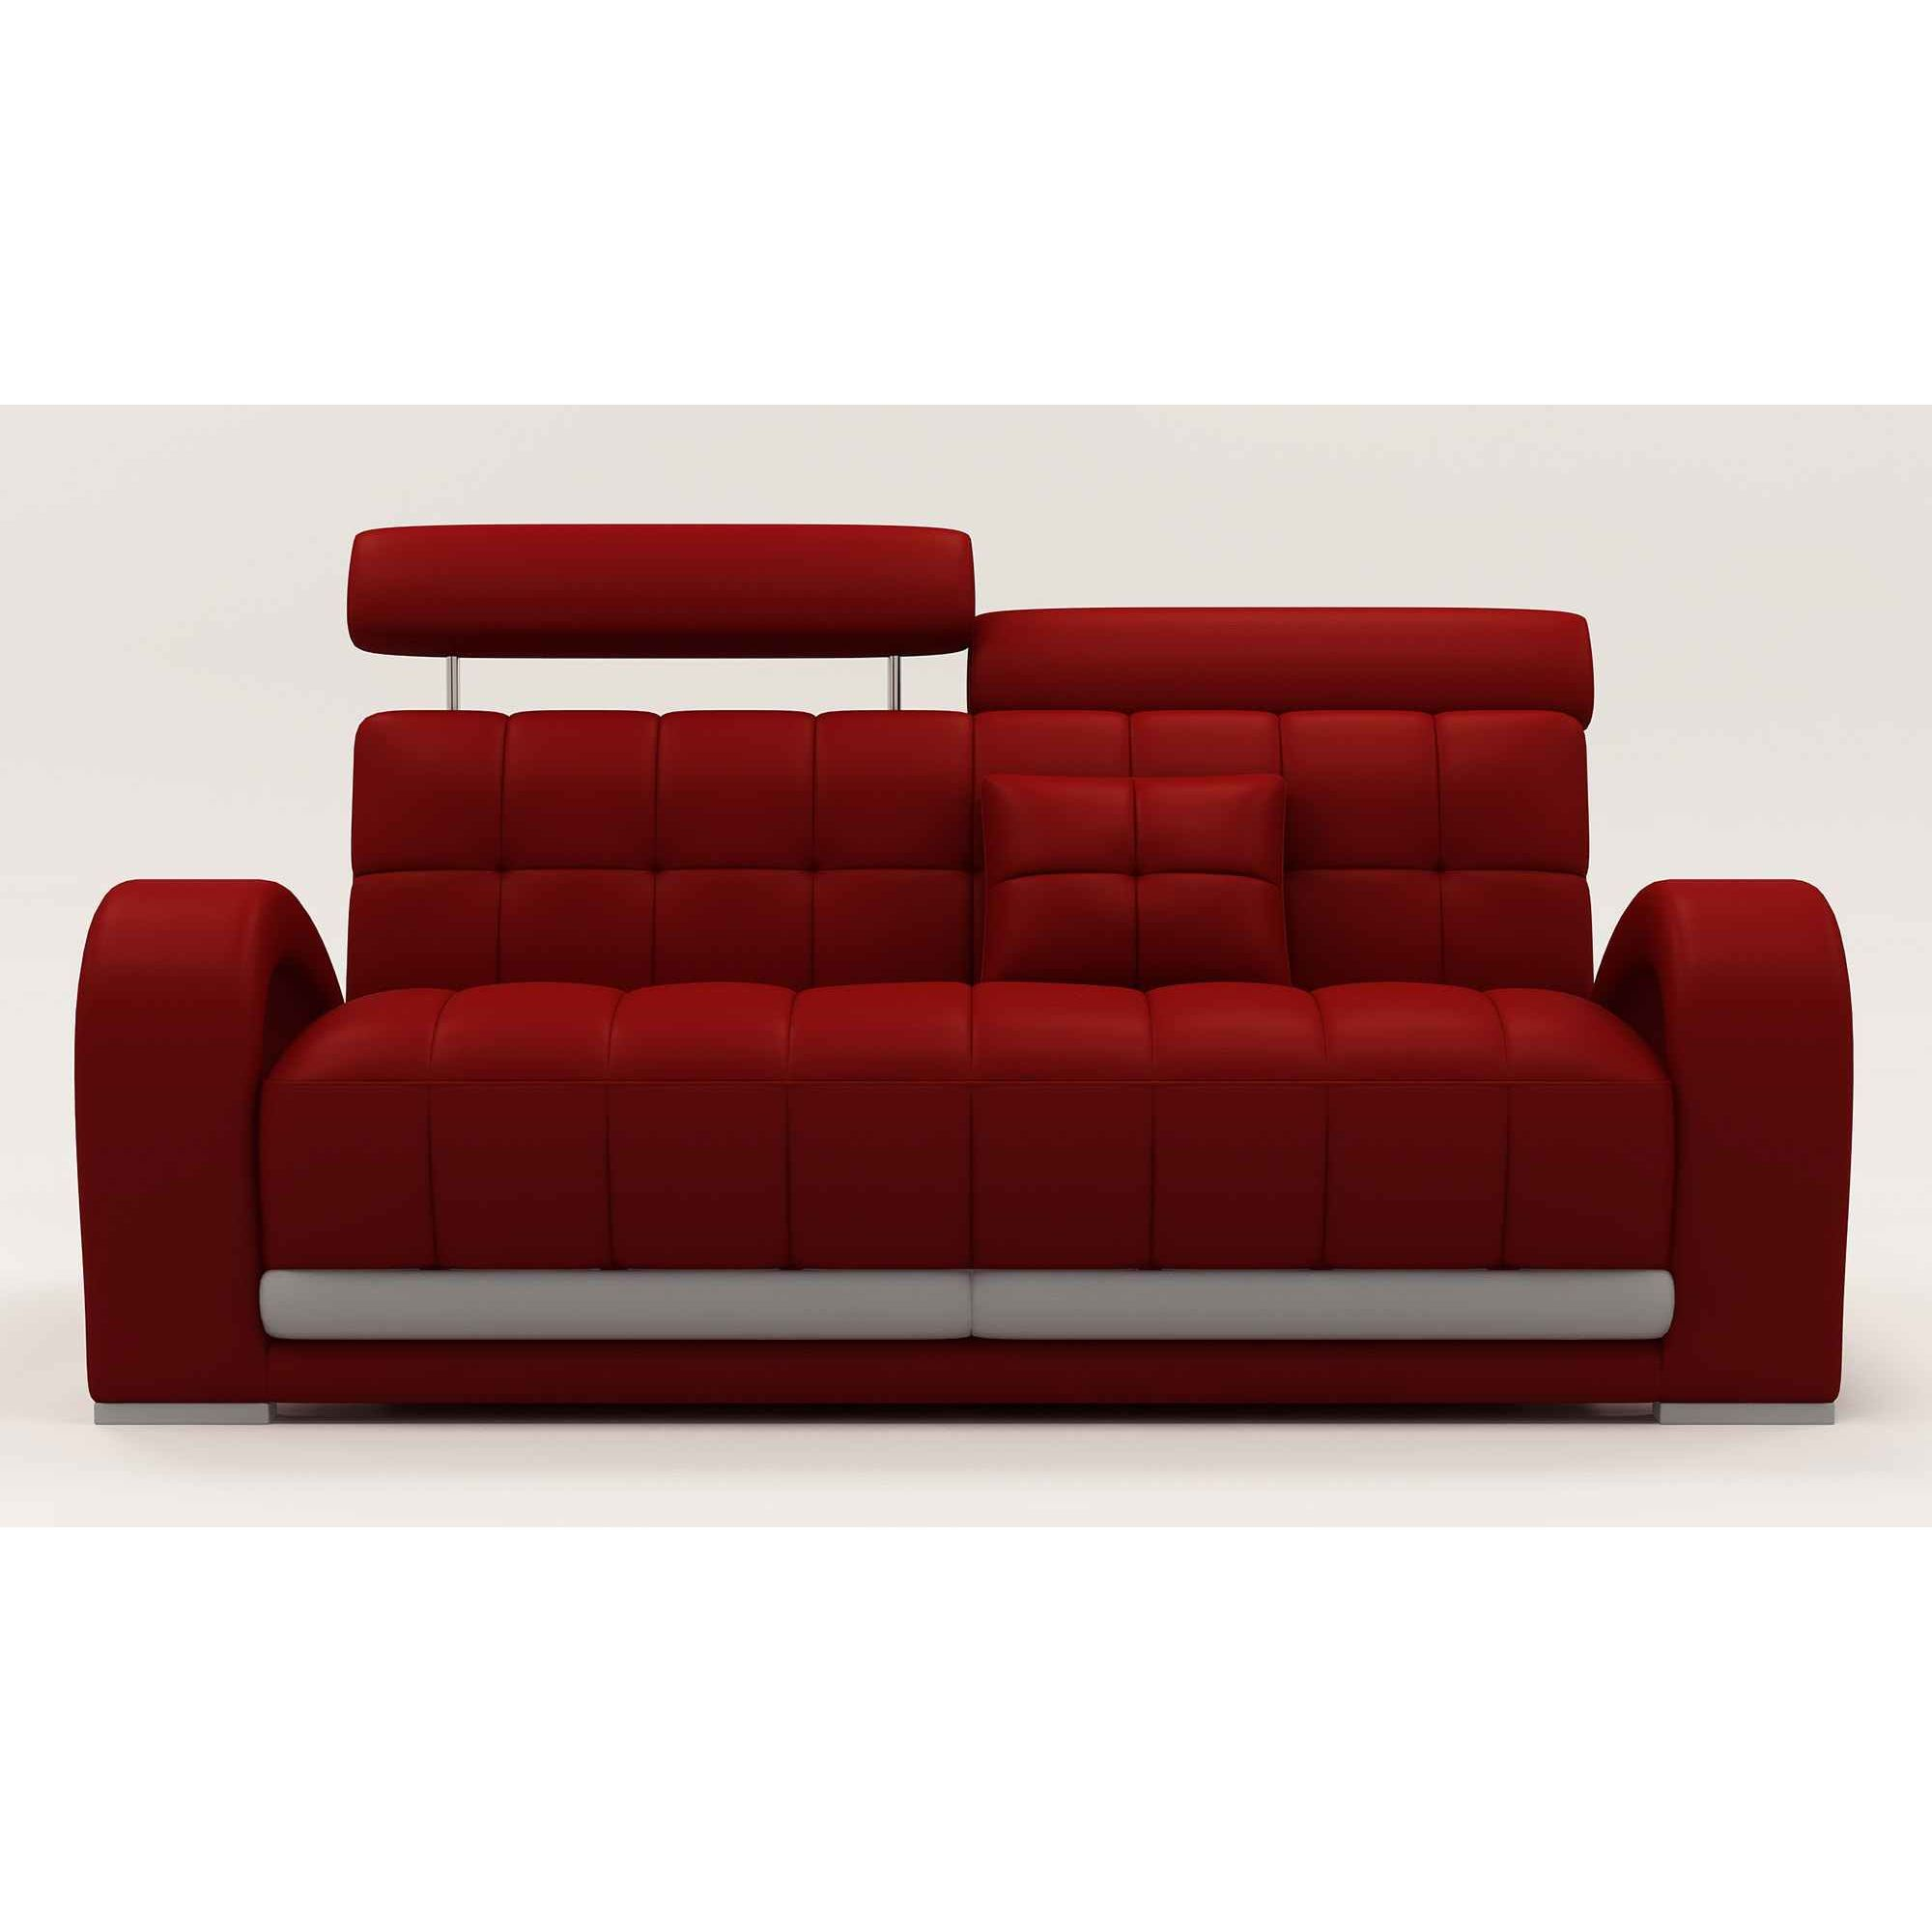 Deco in paris canape cuir rouge 3 places verdi can verdi 3p pu rouge - Canape cuir 3 places ...